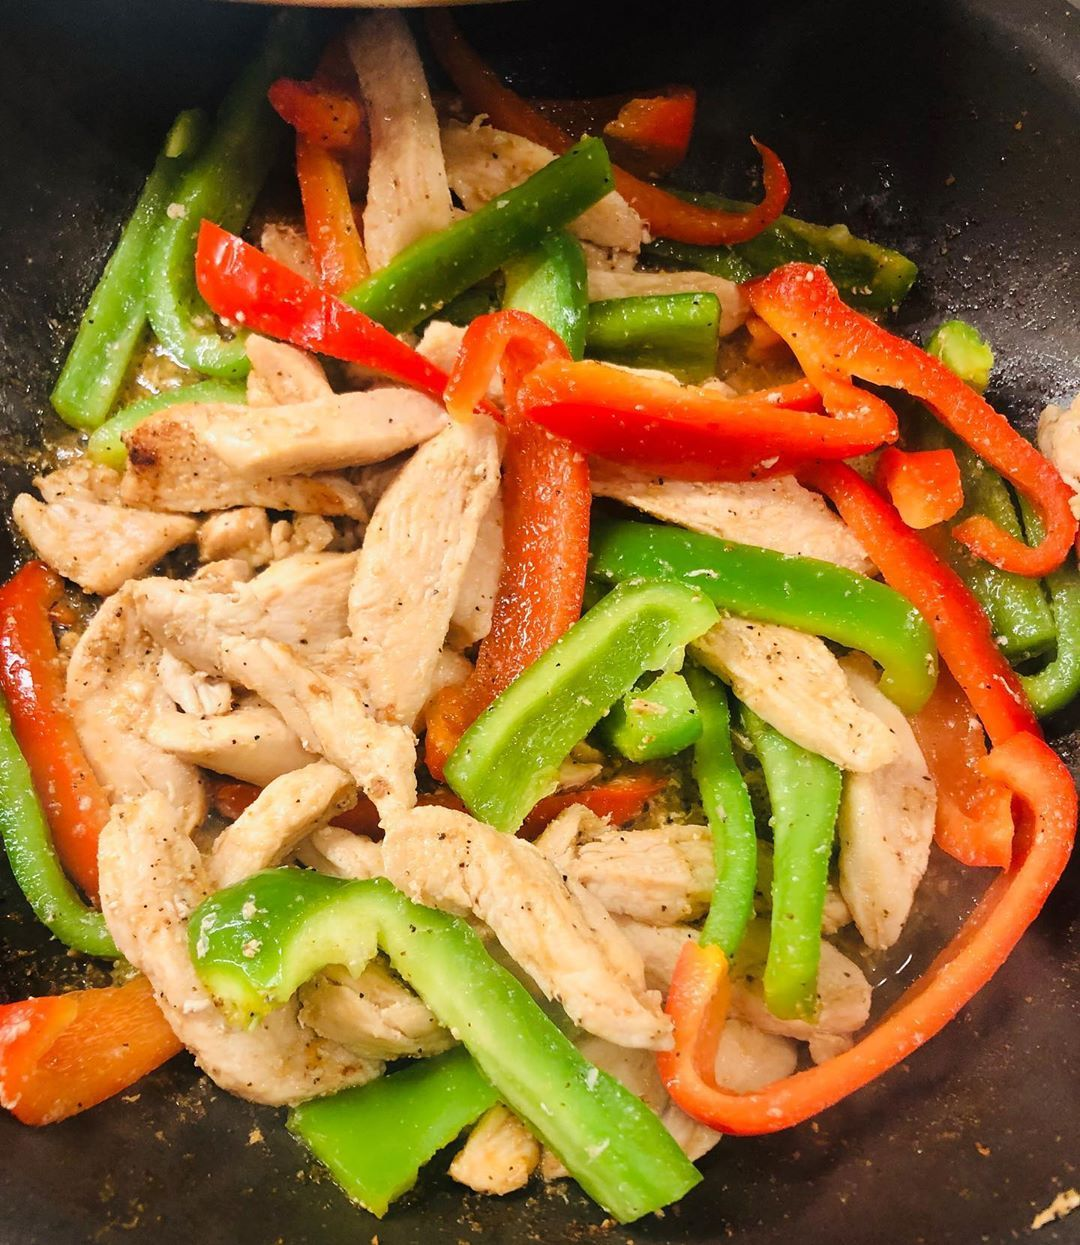 A good Chicken stir fry is always a good idea! Bell peppers, chicken, garlic seasoning, onion seasoning, black pepper, and some Creole seasoning! Serve it with a side or brown or white rice👍🏽